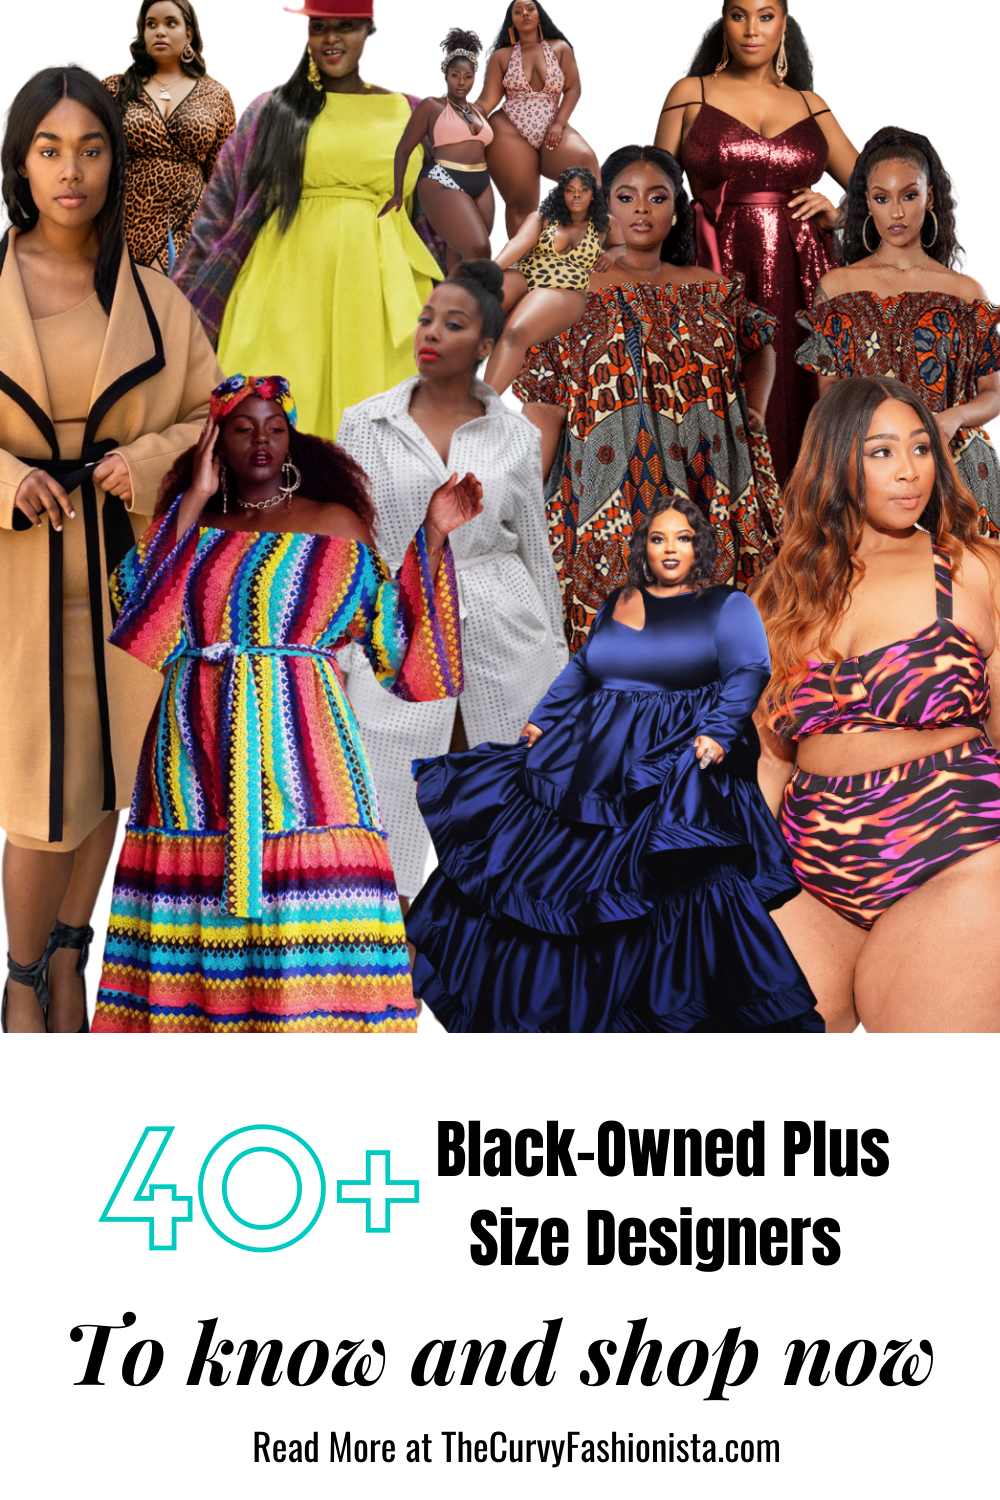 40+ Black owned Plus Size Designers